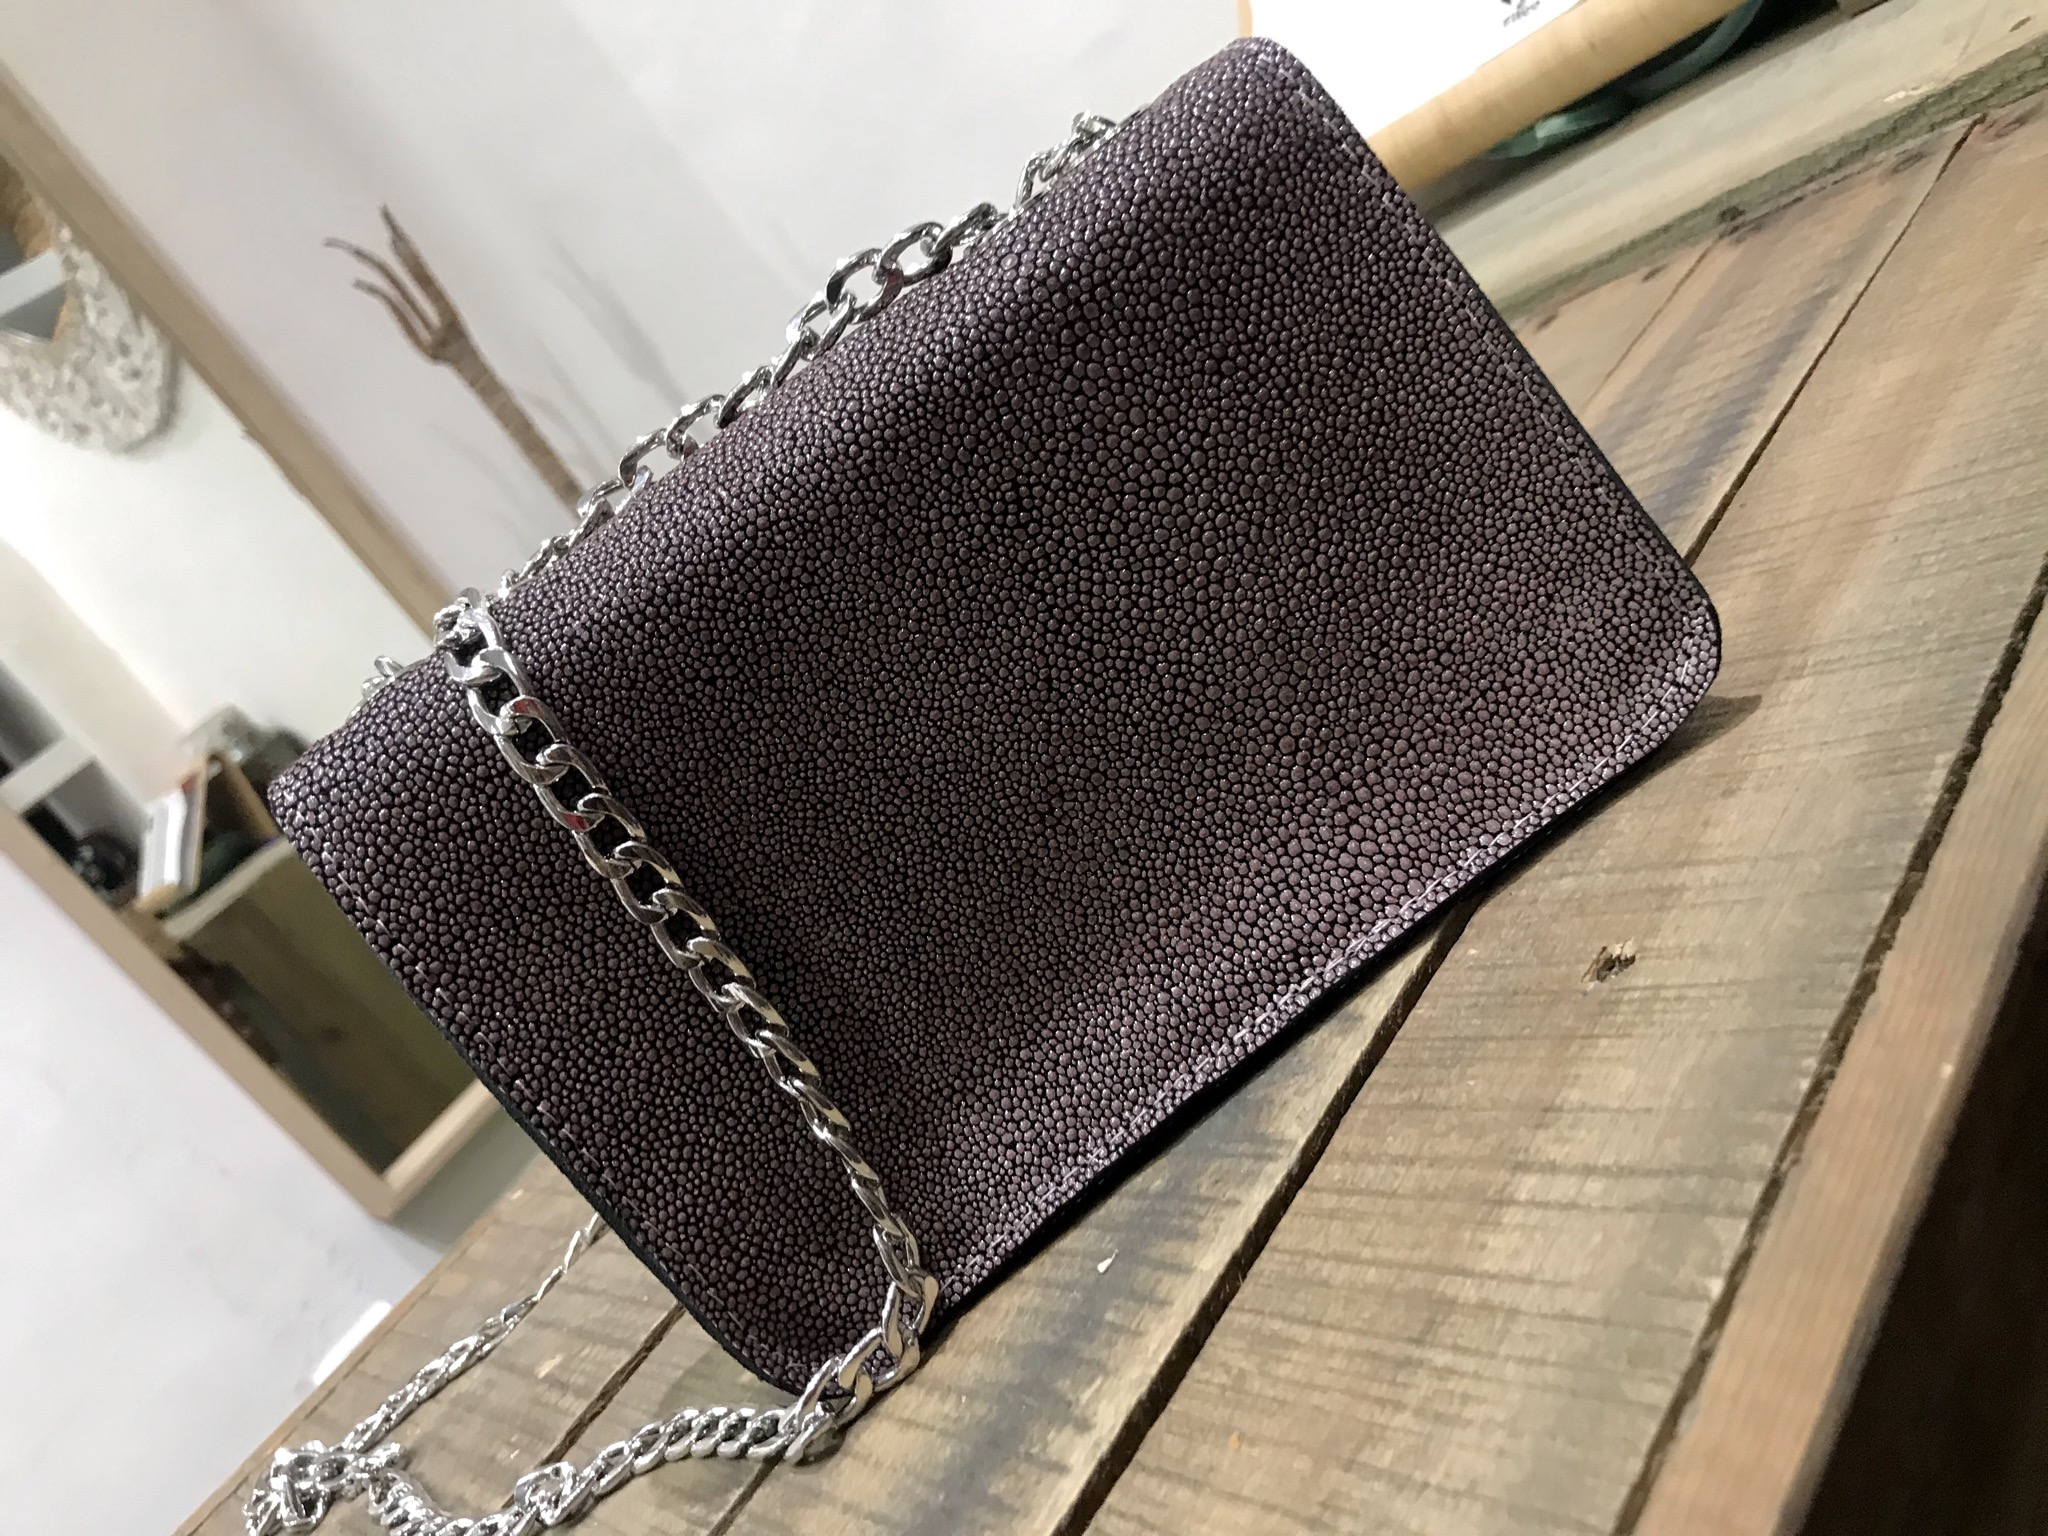 Mini bag leather caviar nude black with silver chain